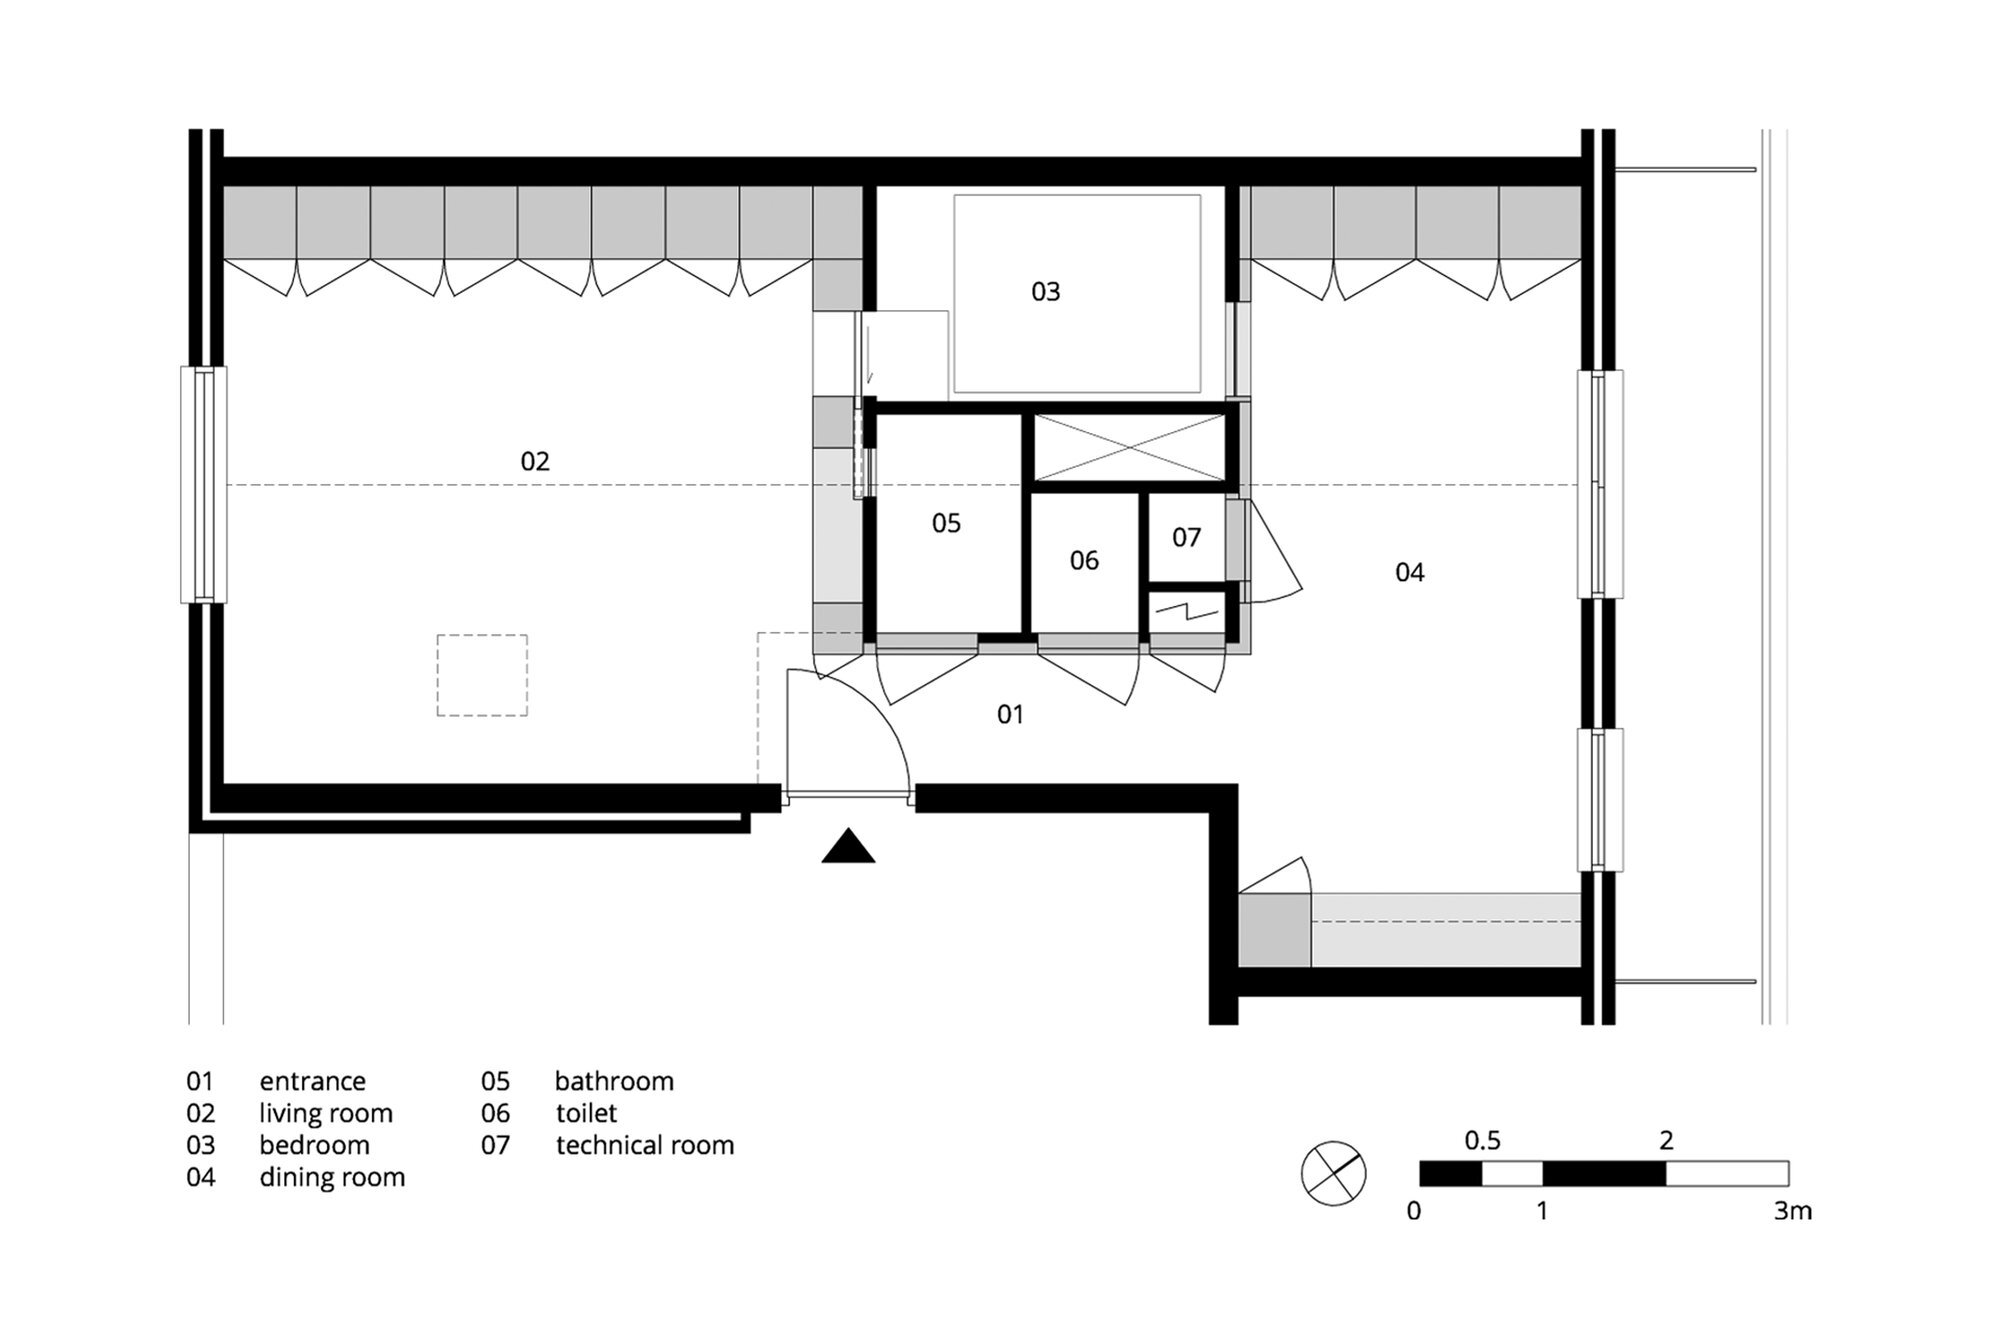 Amsterdam Urban Loft - Bureau Fraai - Amsterdam - Floor Plan - Humble Homes